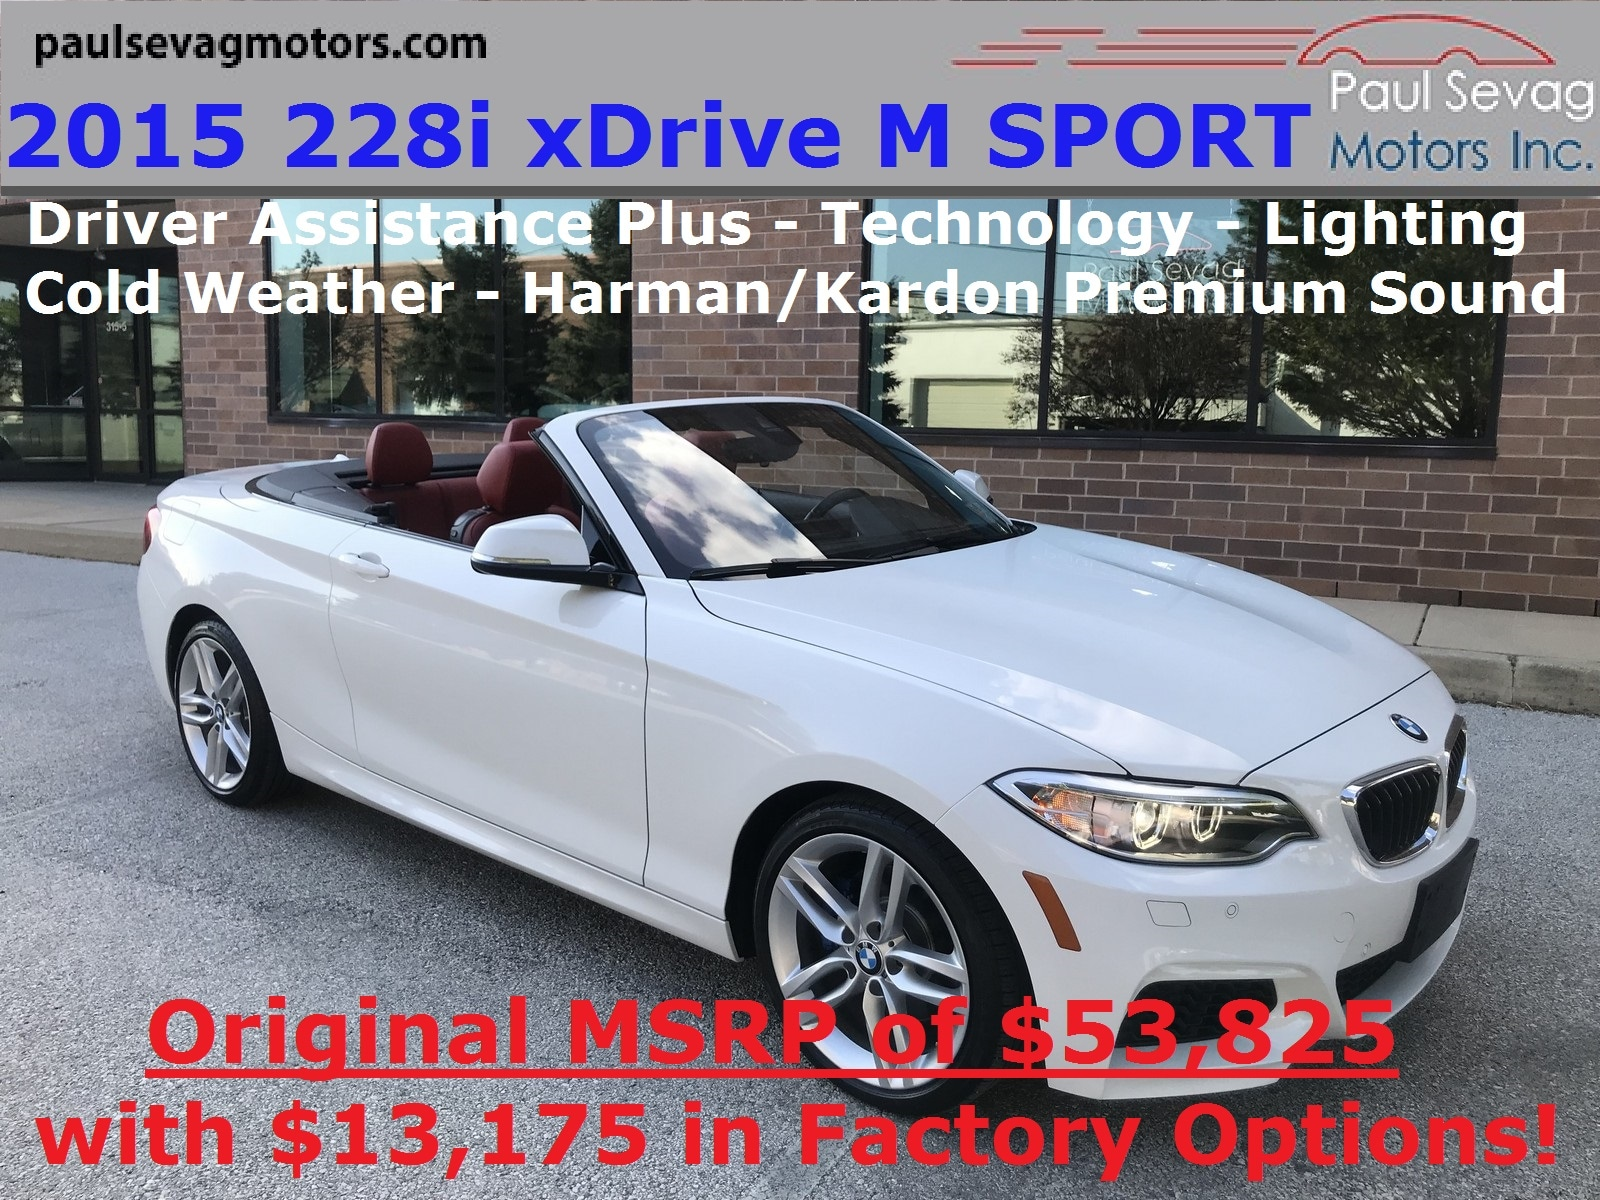 2015 BMW 228i xDrive M Sport Convertible Lighting/Technology/Driver Assistance Plus/MSRP $53,825 Convertible